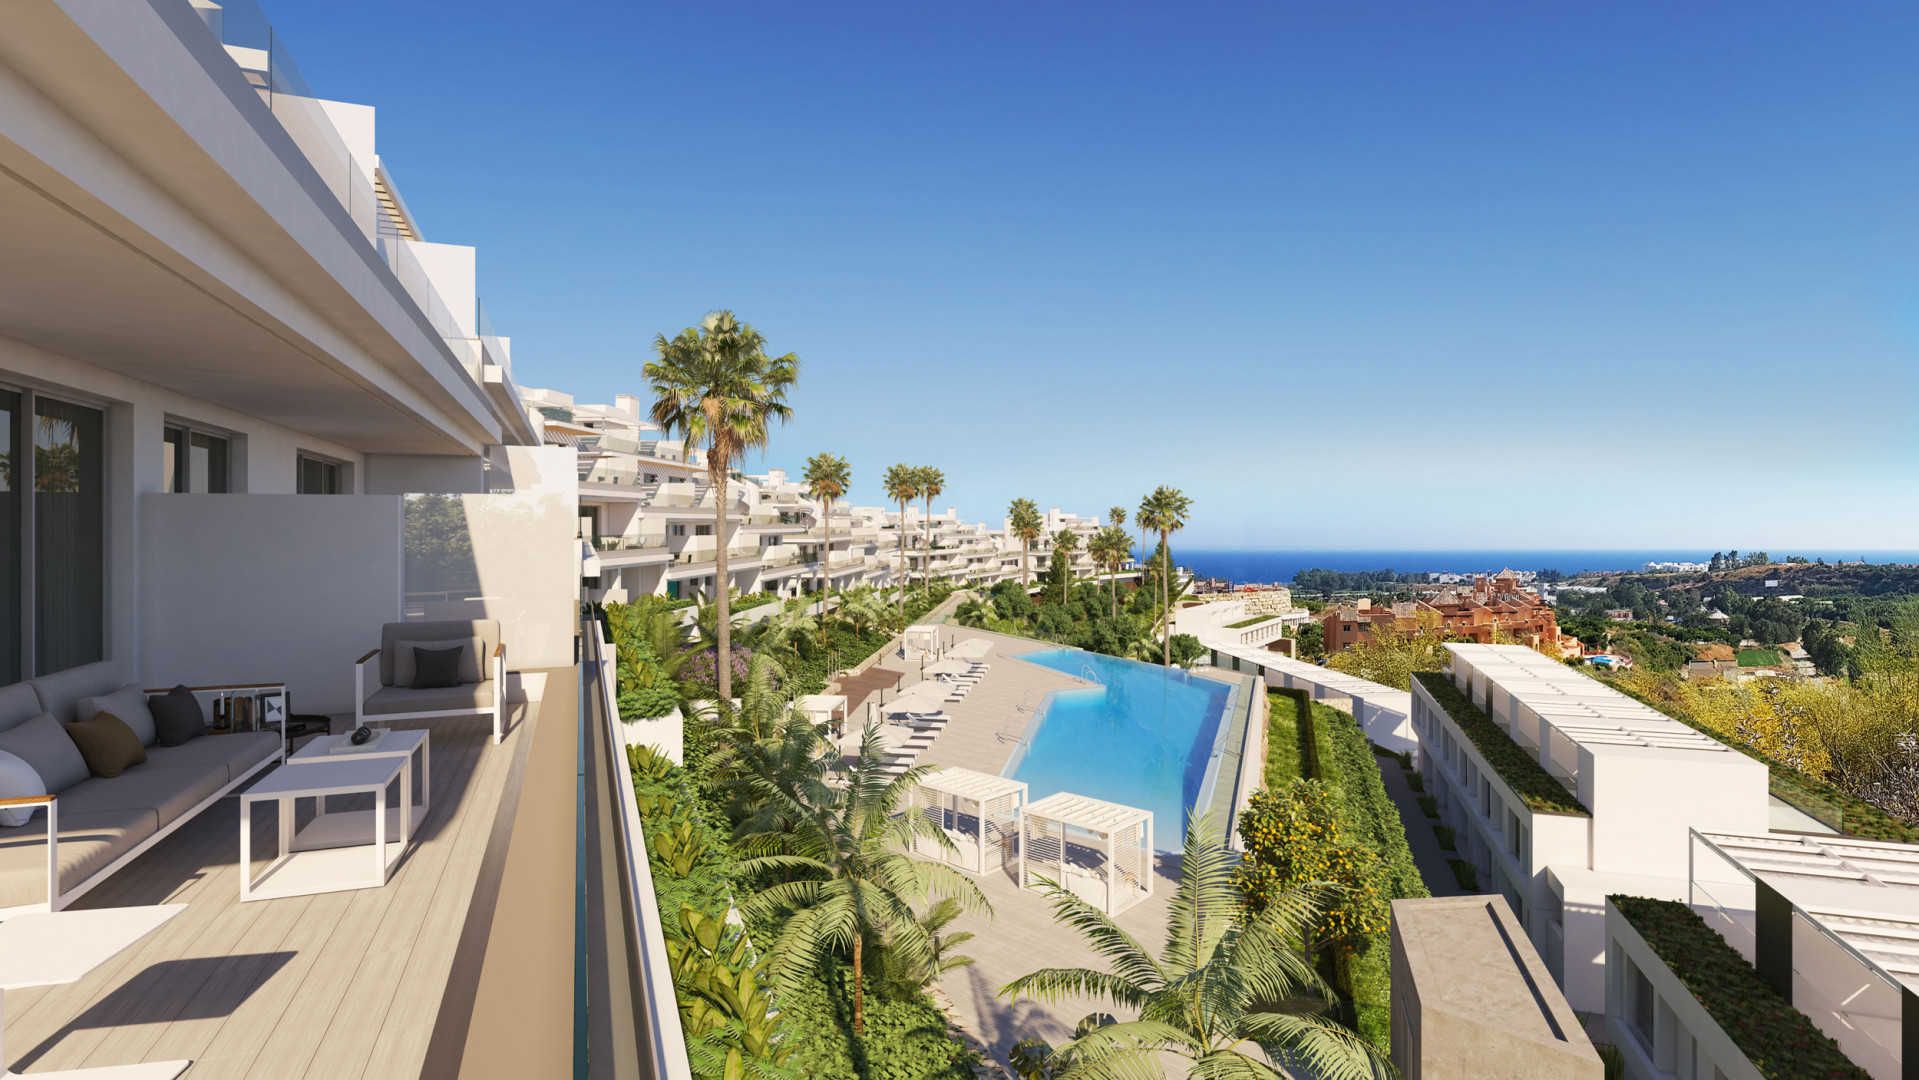 Project of 78 apartments walking distance to amenities – Cancelada, Estepona